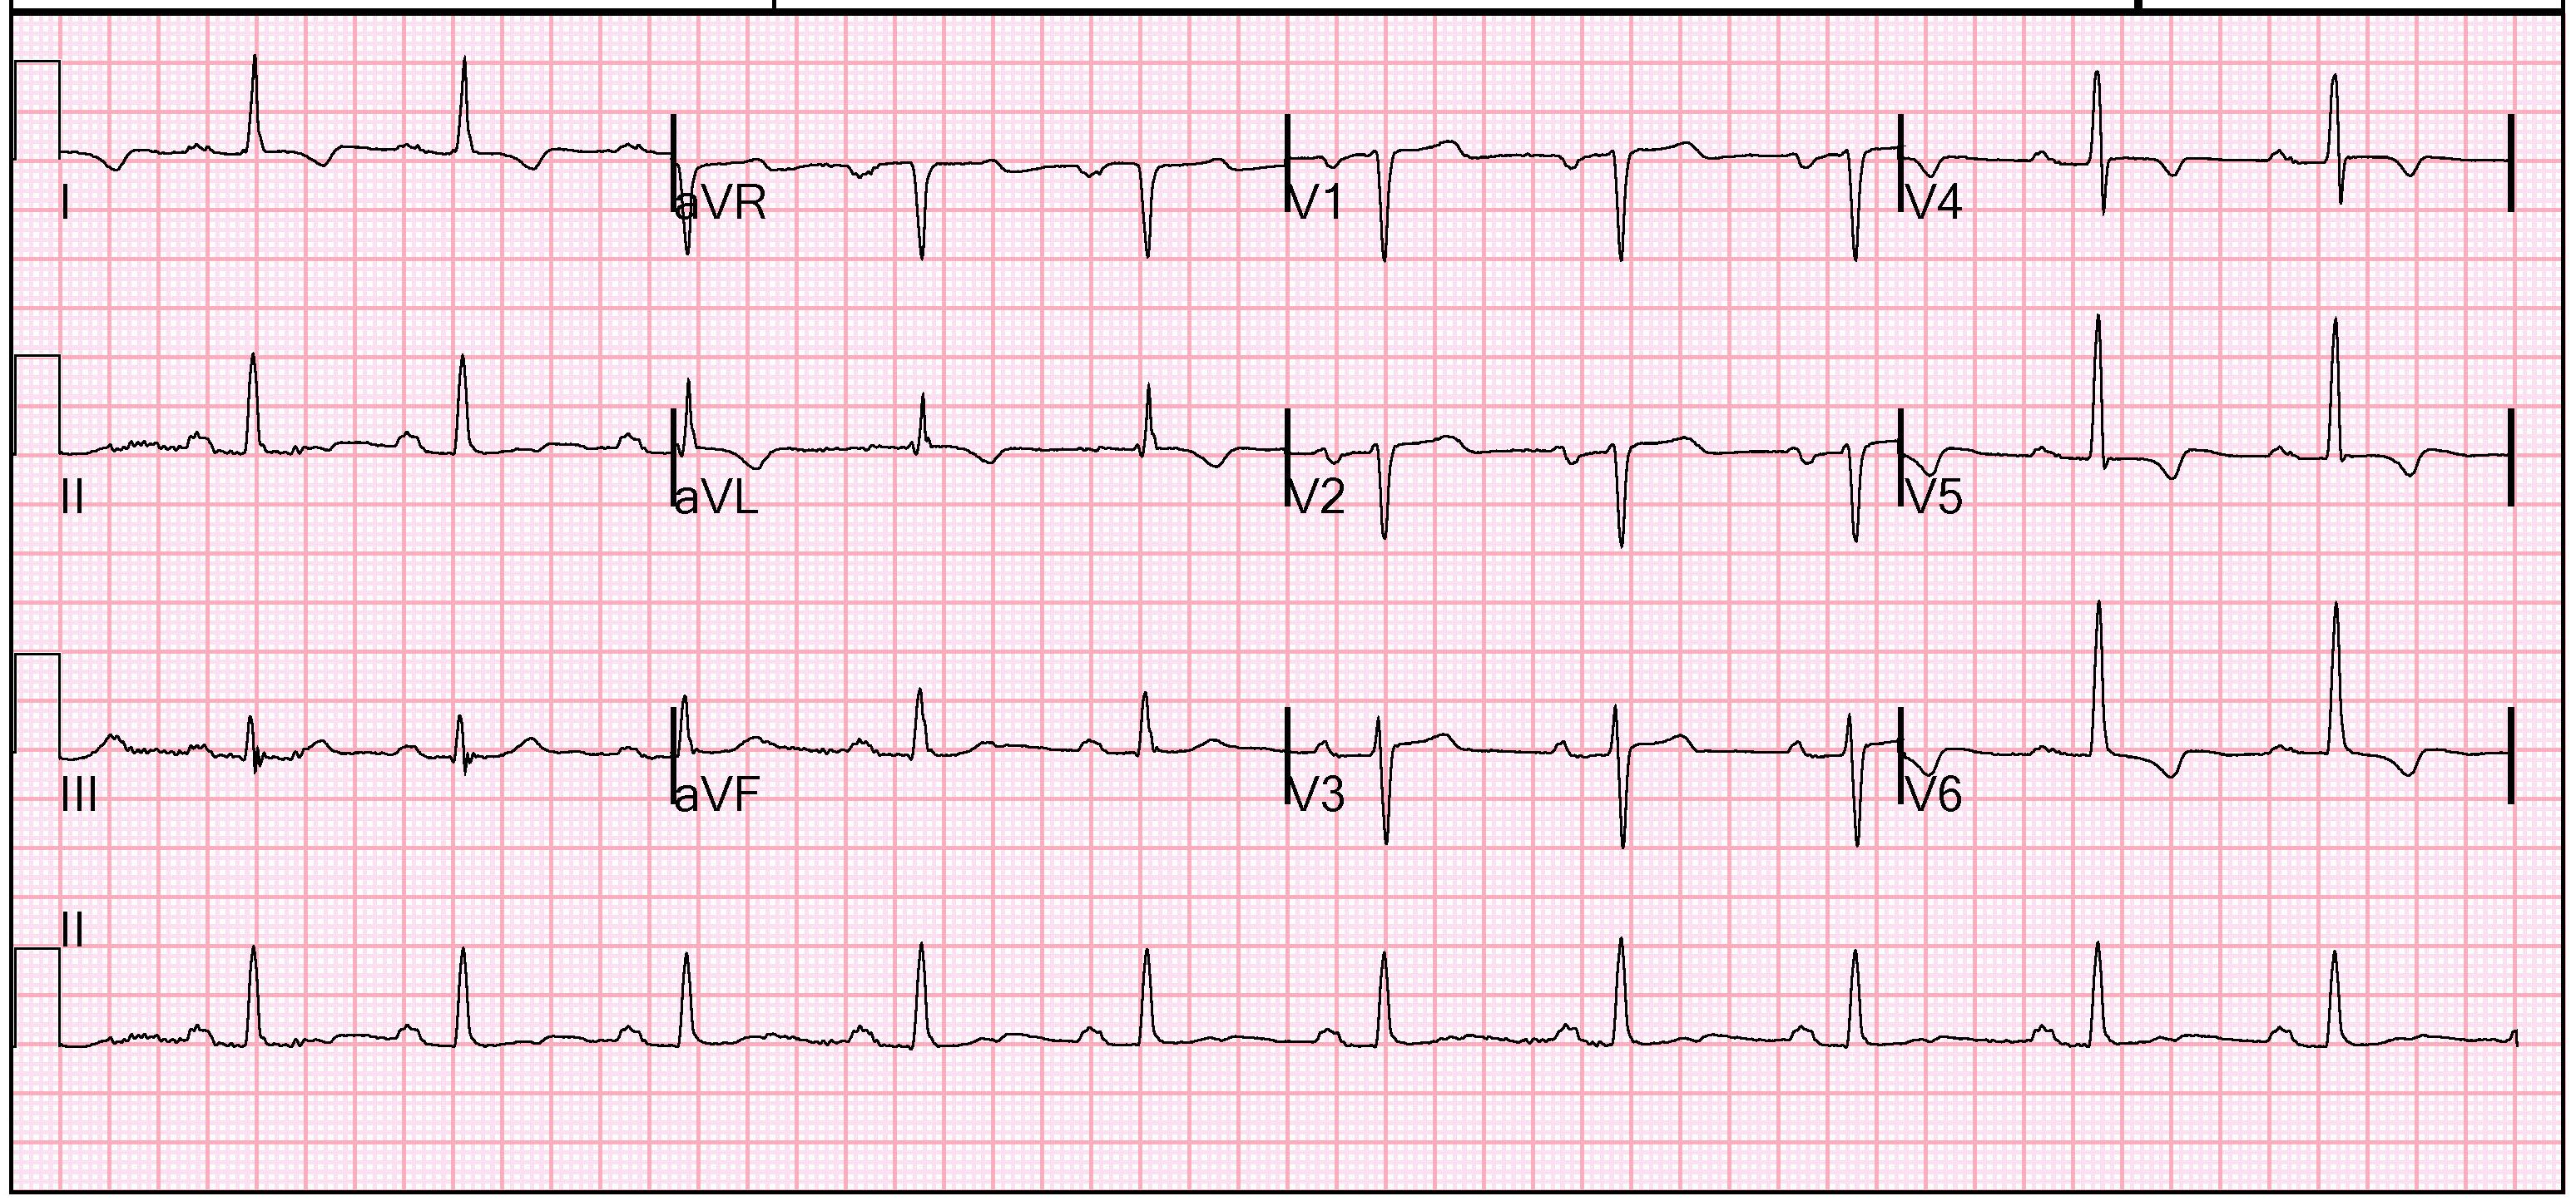 Image Result For Images Of Normal 12 Lead Ecg Rhythm On Ecg Strip